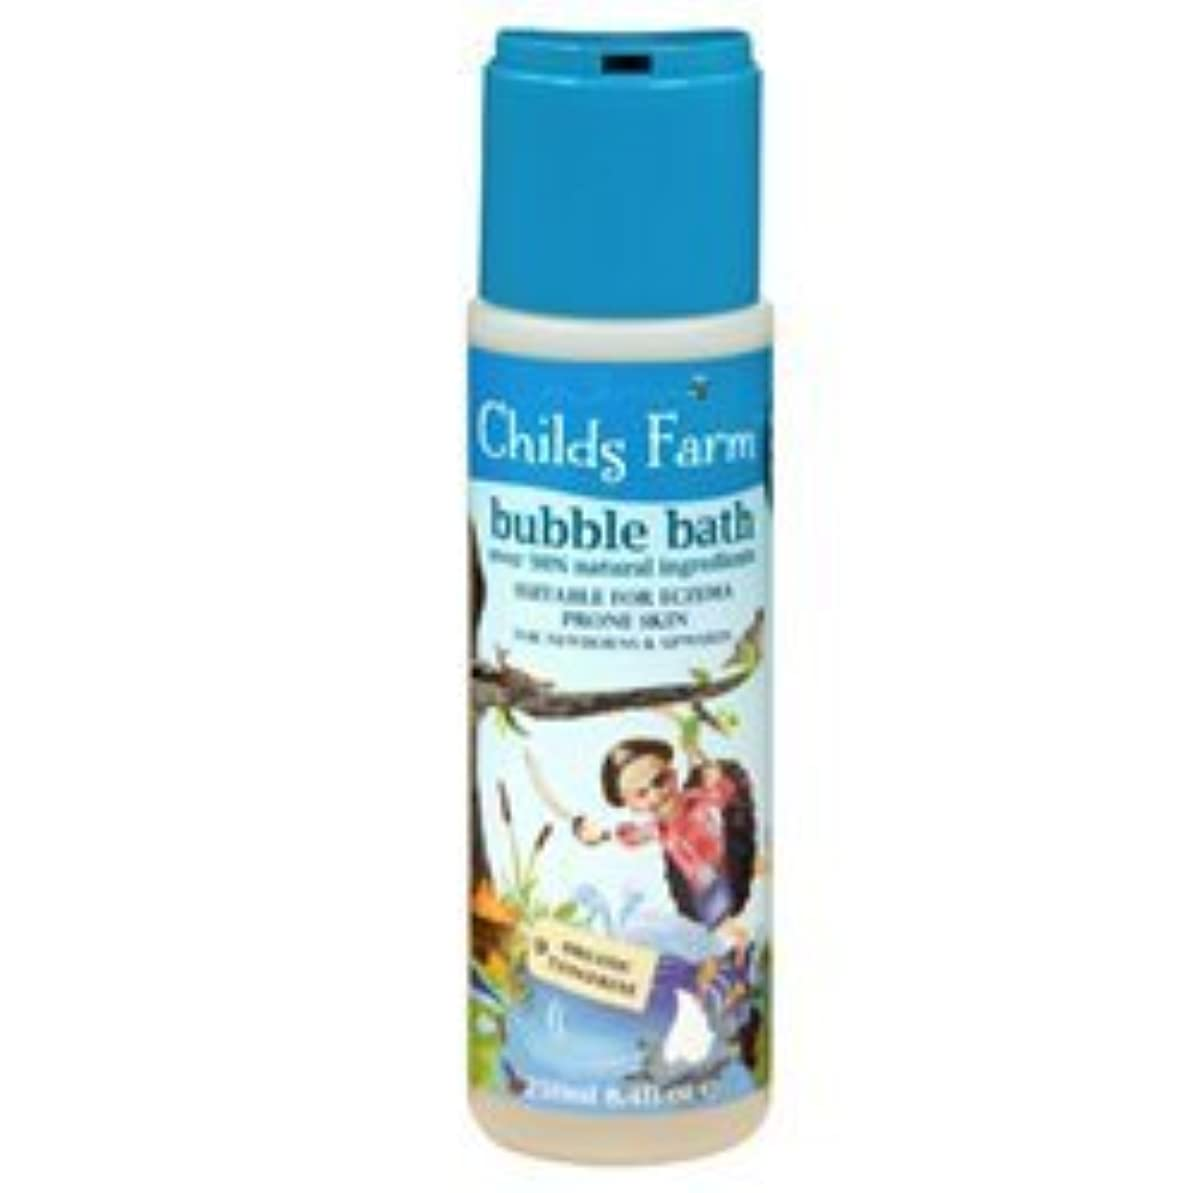 歩道名前ペーストChilds Farm Bubble bath for Buccaneers 250ml x 1 by Childs Farm [並行輸入品]